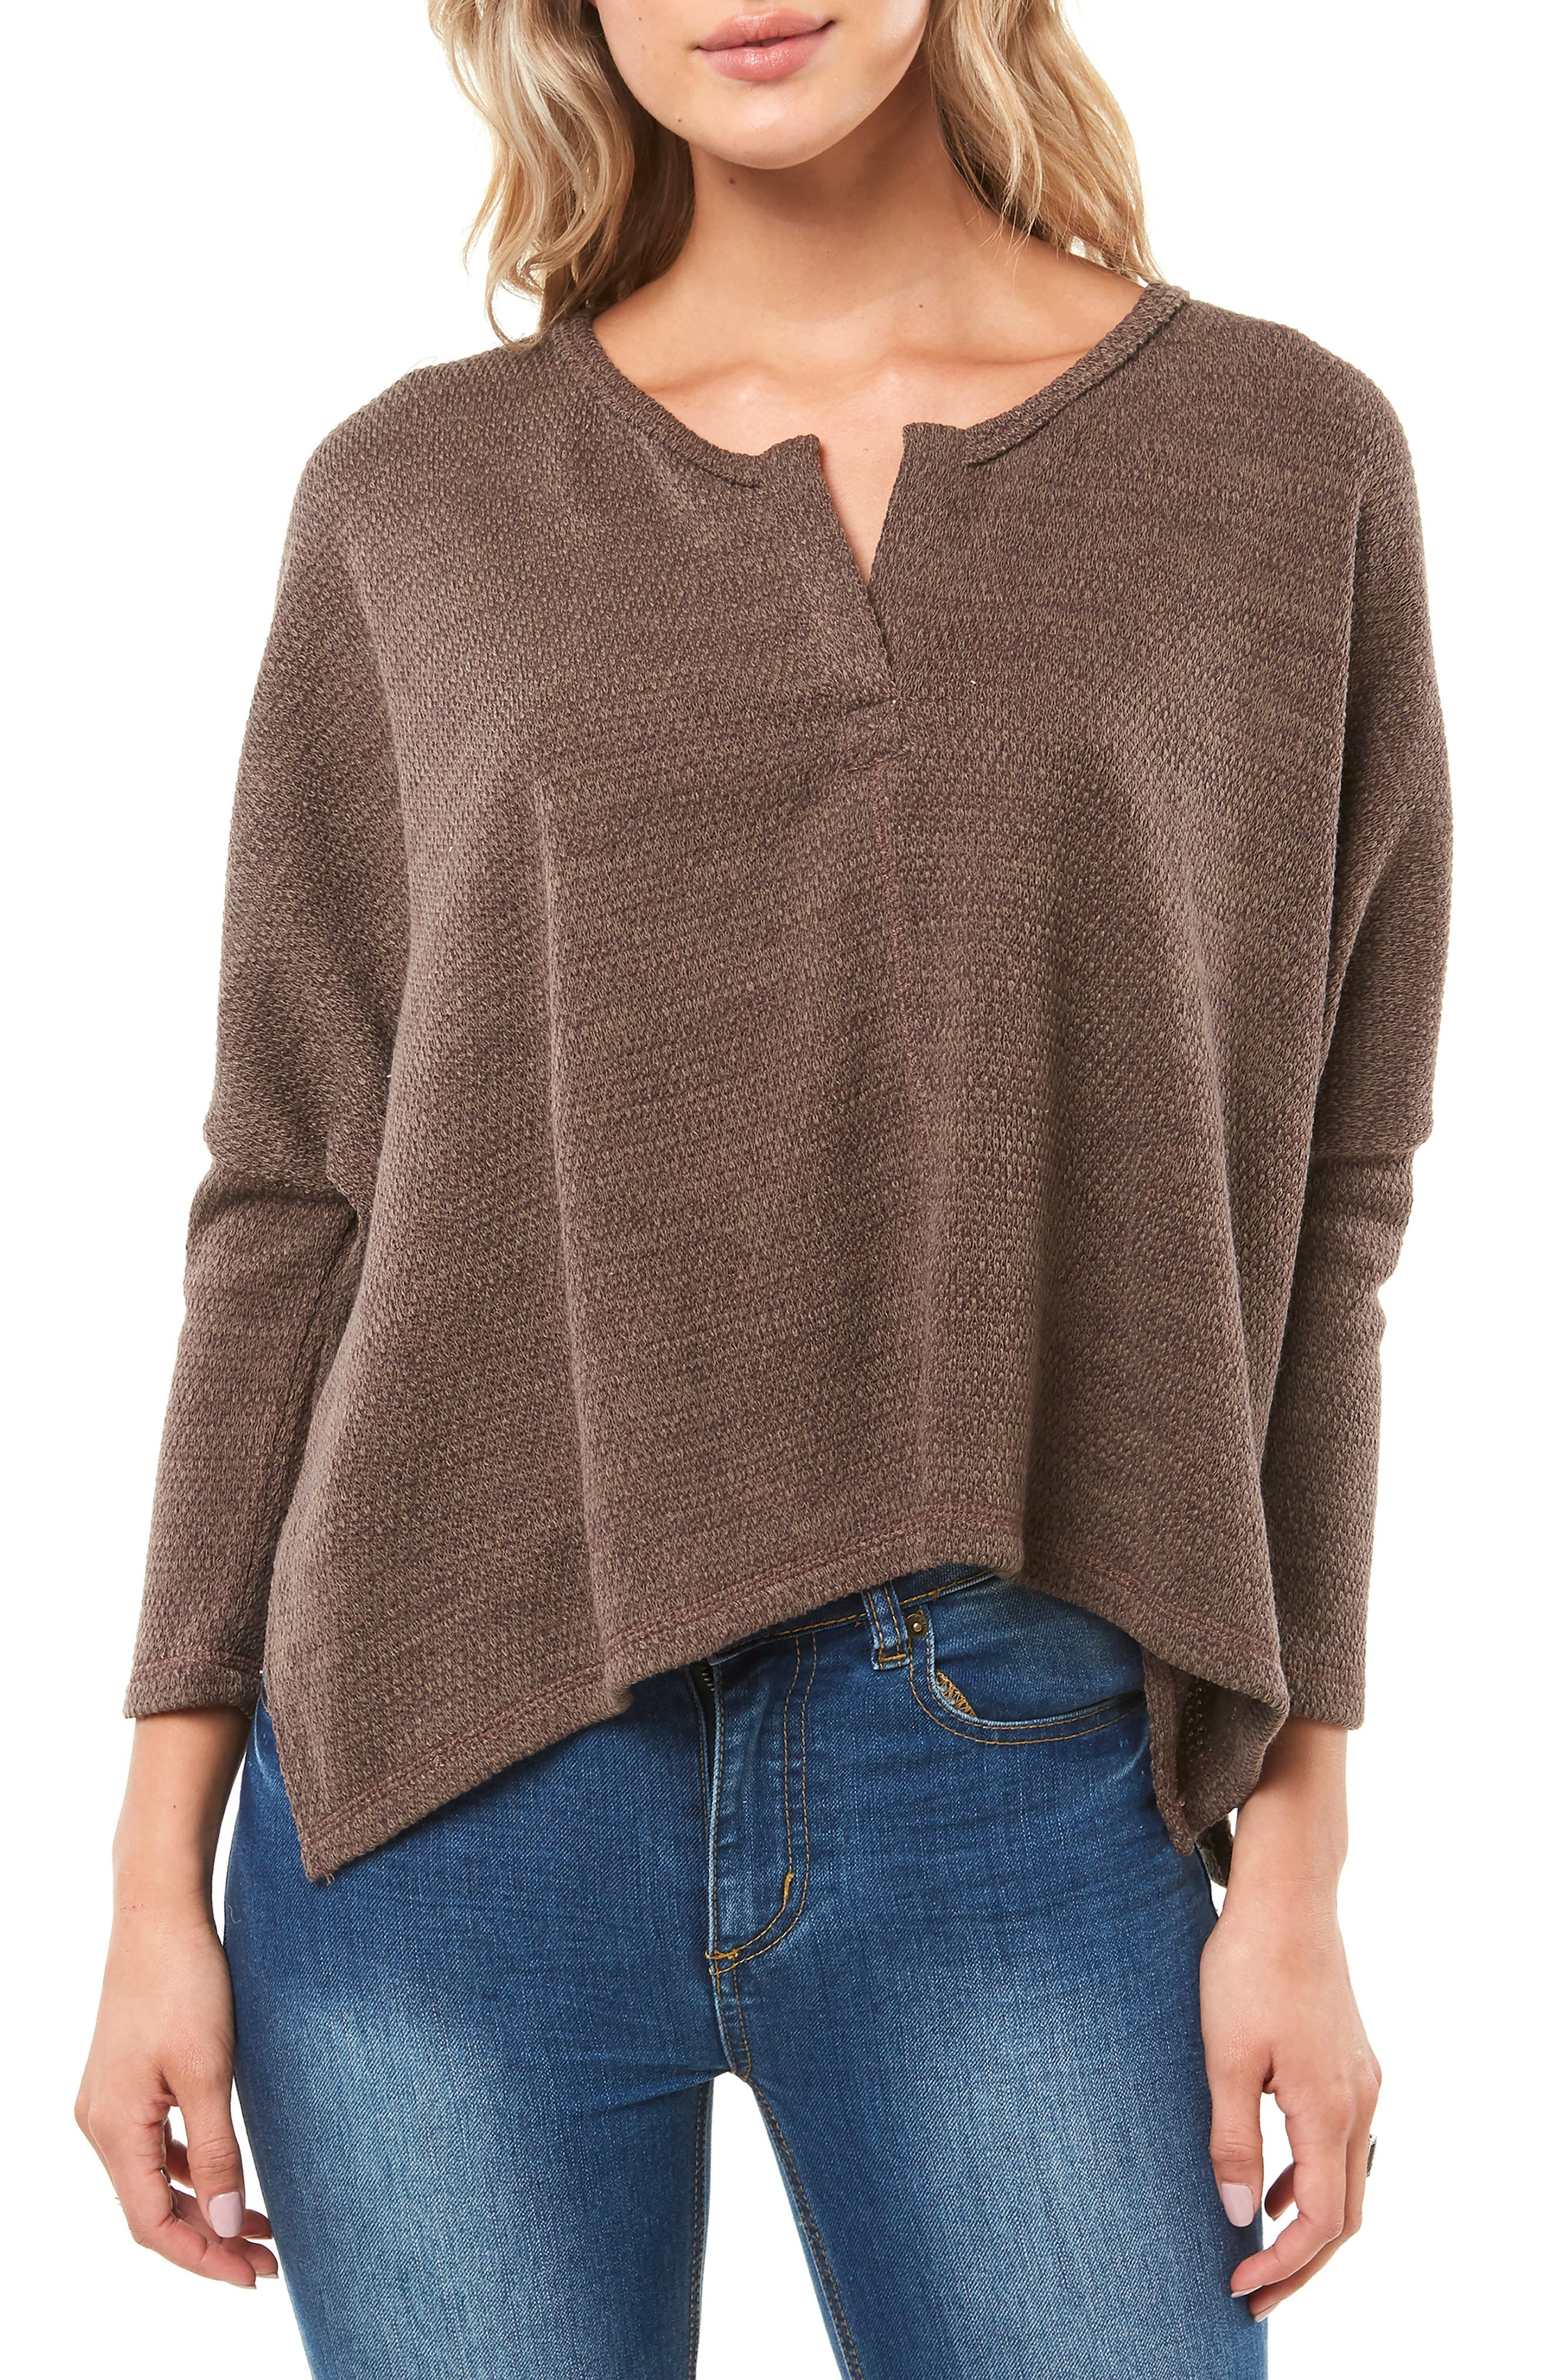 Pines Knit Top,                             Main thumbnail 1, color,                             PEPPERCORN